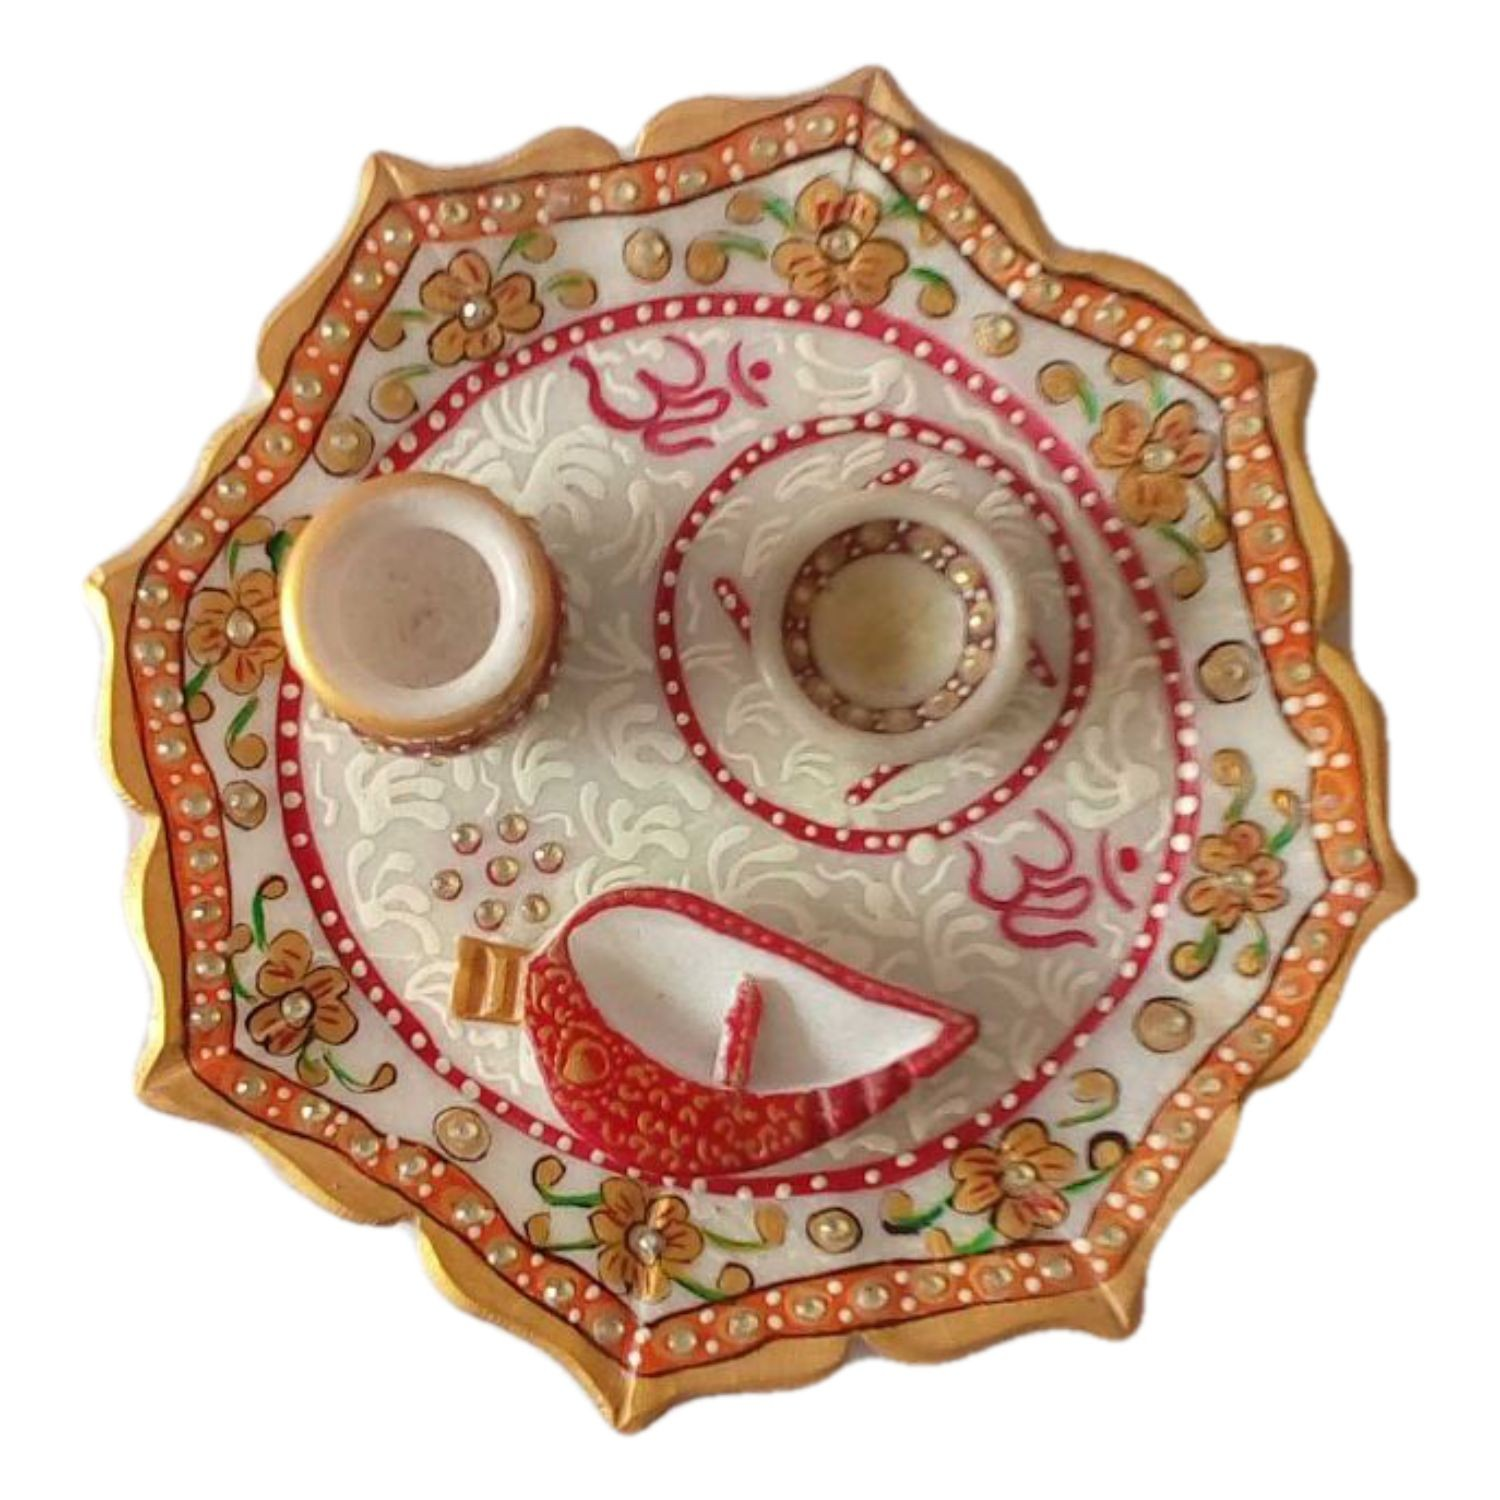 Handicraft Store Auscipious Pooja Thali with Peacock Design and Shub Labh Must for Indian Holy Festivals 8 Inches in Diameter Metal Holy Decorated Tradition Pooja Thali